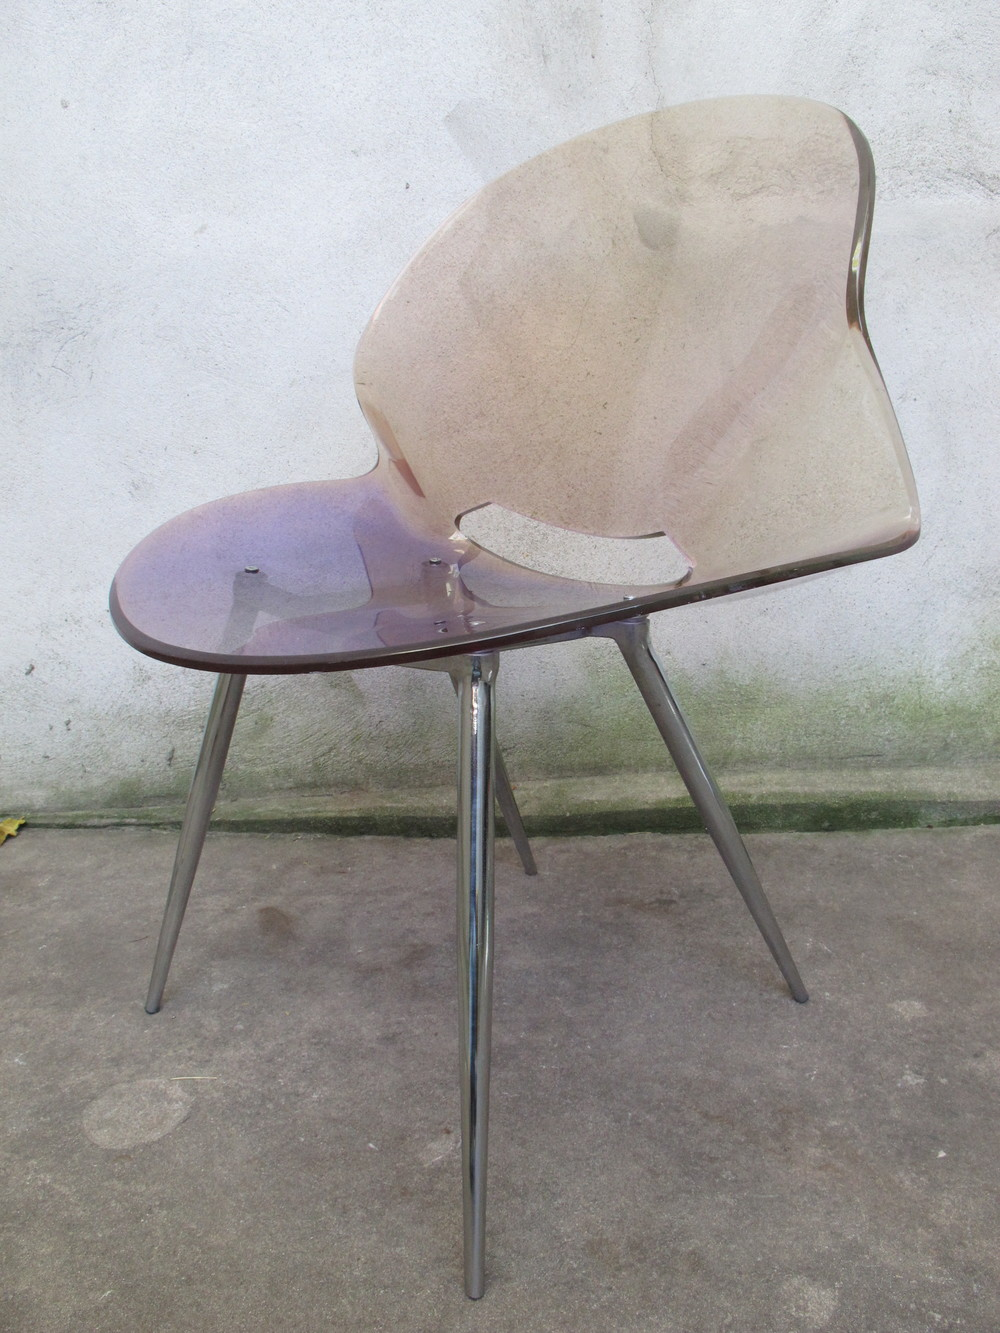 MID CENTURY MODERN CLEAR PLASTIC CHAIR